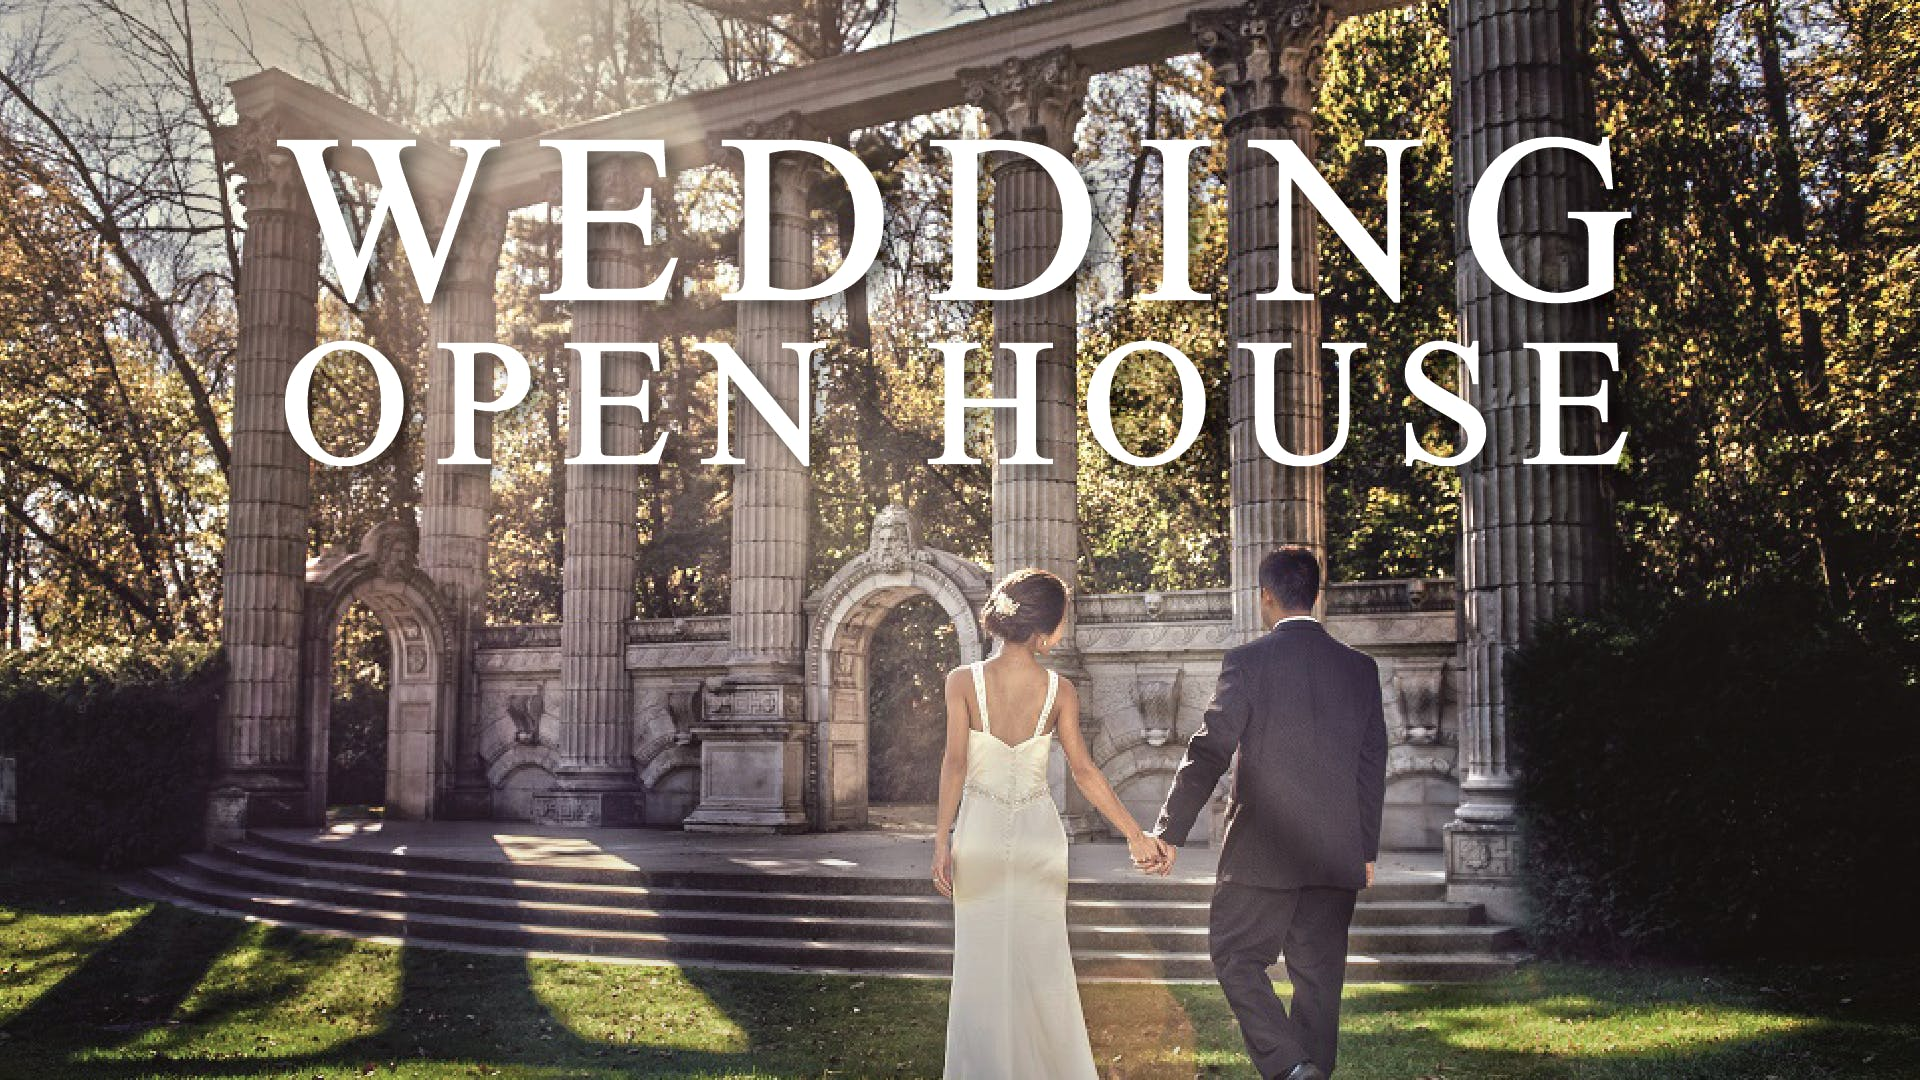 The Guild Inn Estate Wedding Open House